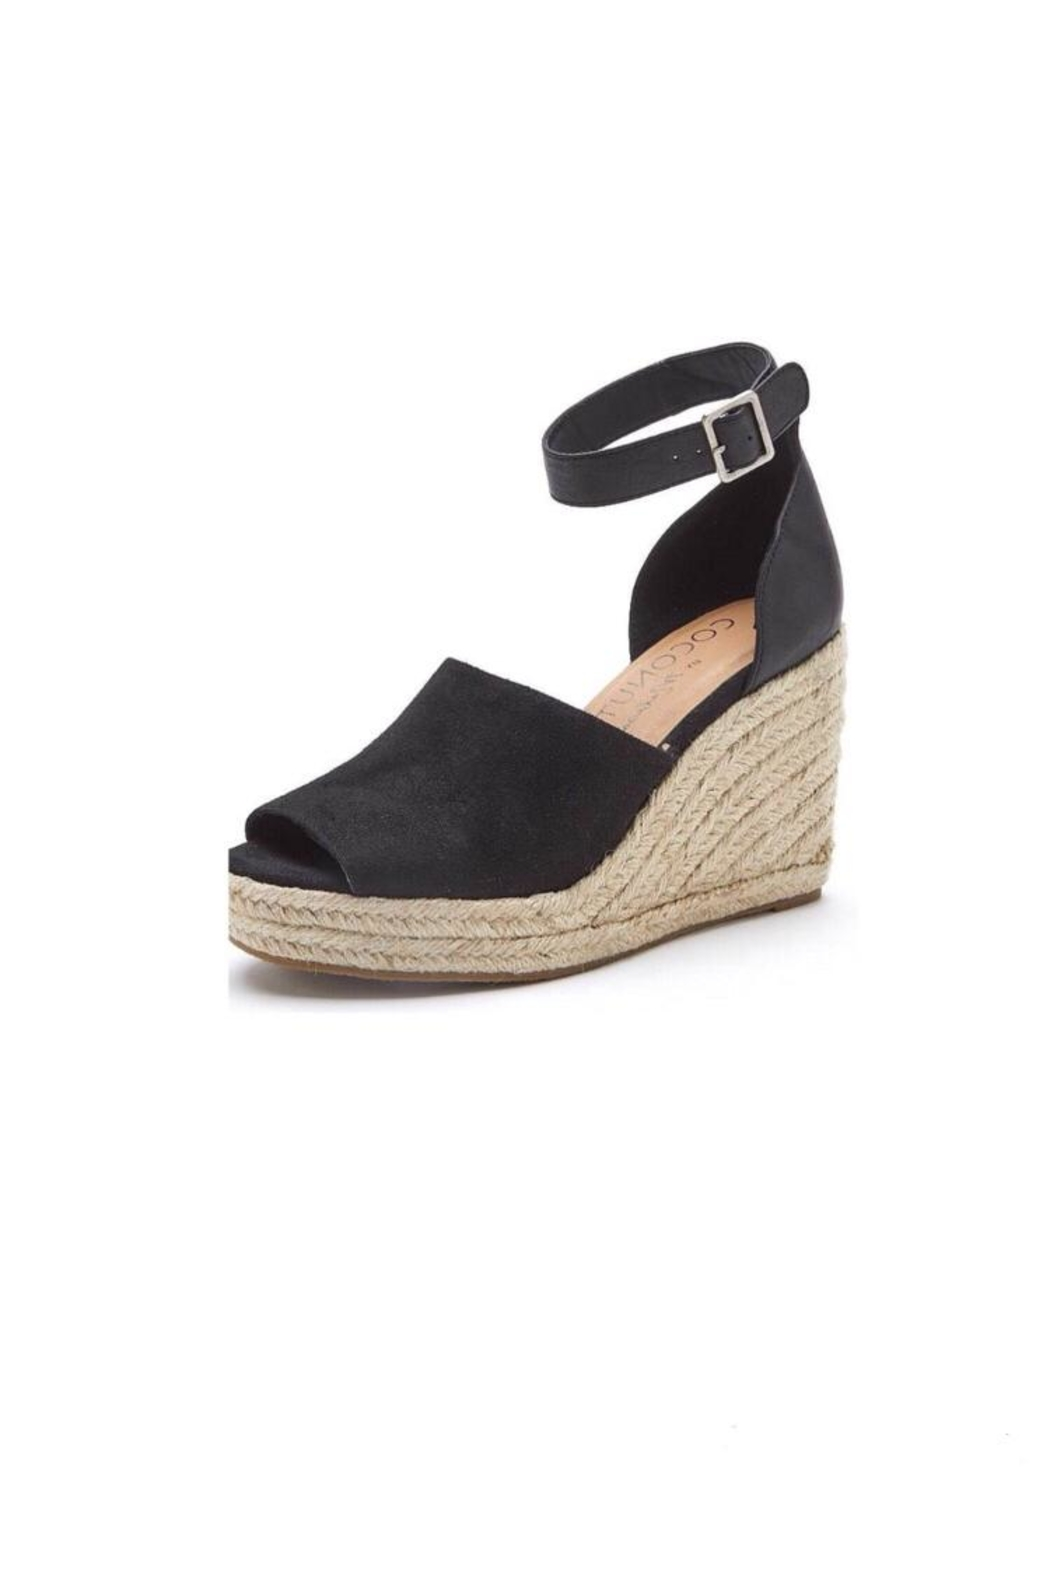 9e2897bca55457 Coconuts by Matisse Black Wedge Sandals from Georgia by All Together ...